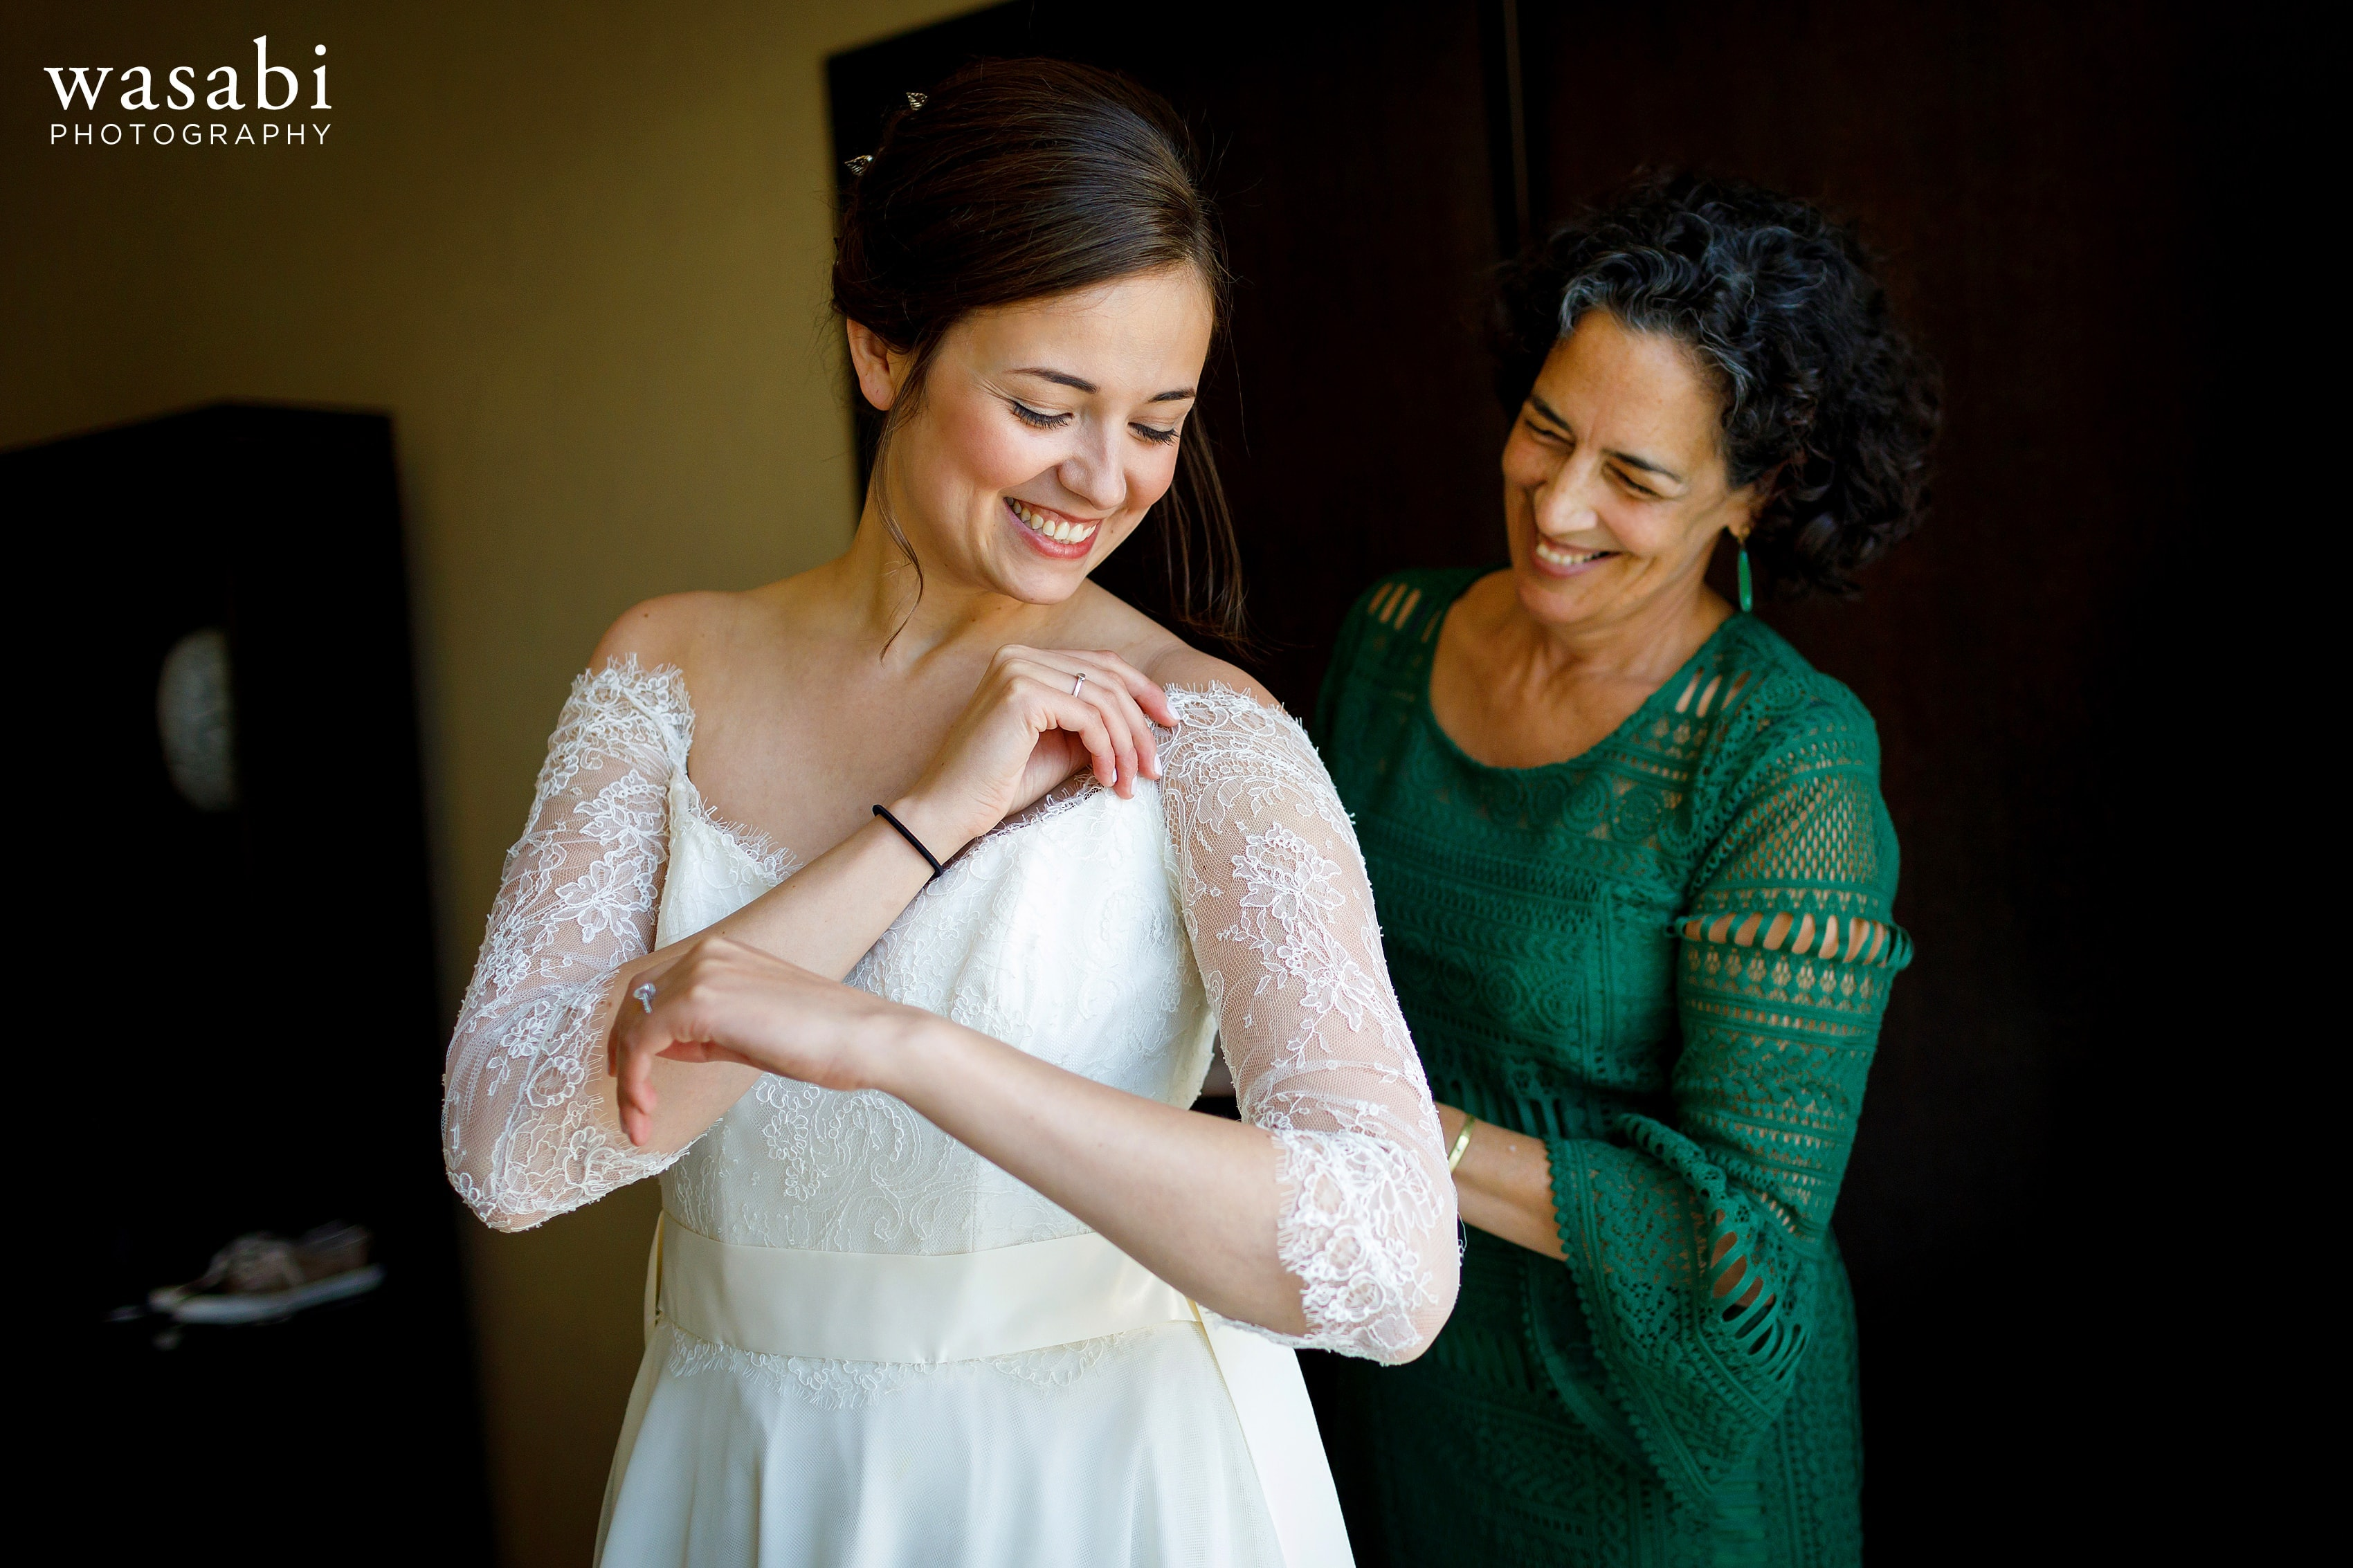 Zoe-is-helped-into-her-wedding-dress-while-getting-ready-at-Hotel-Palomar-in-Chicago-06